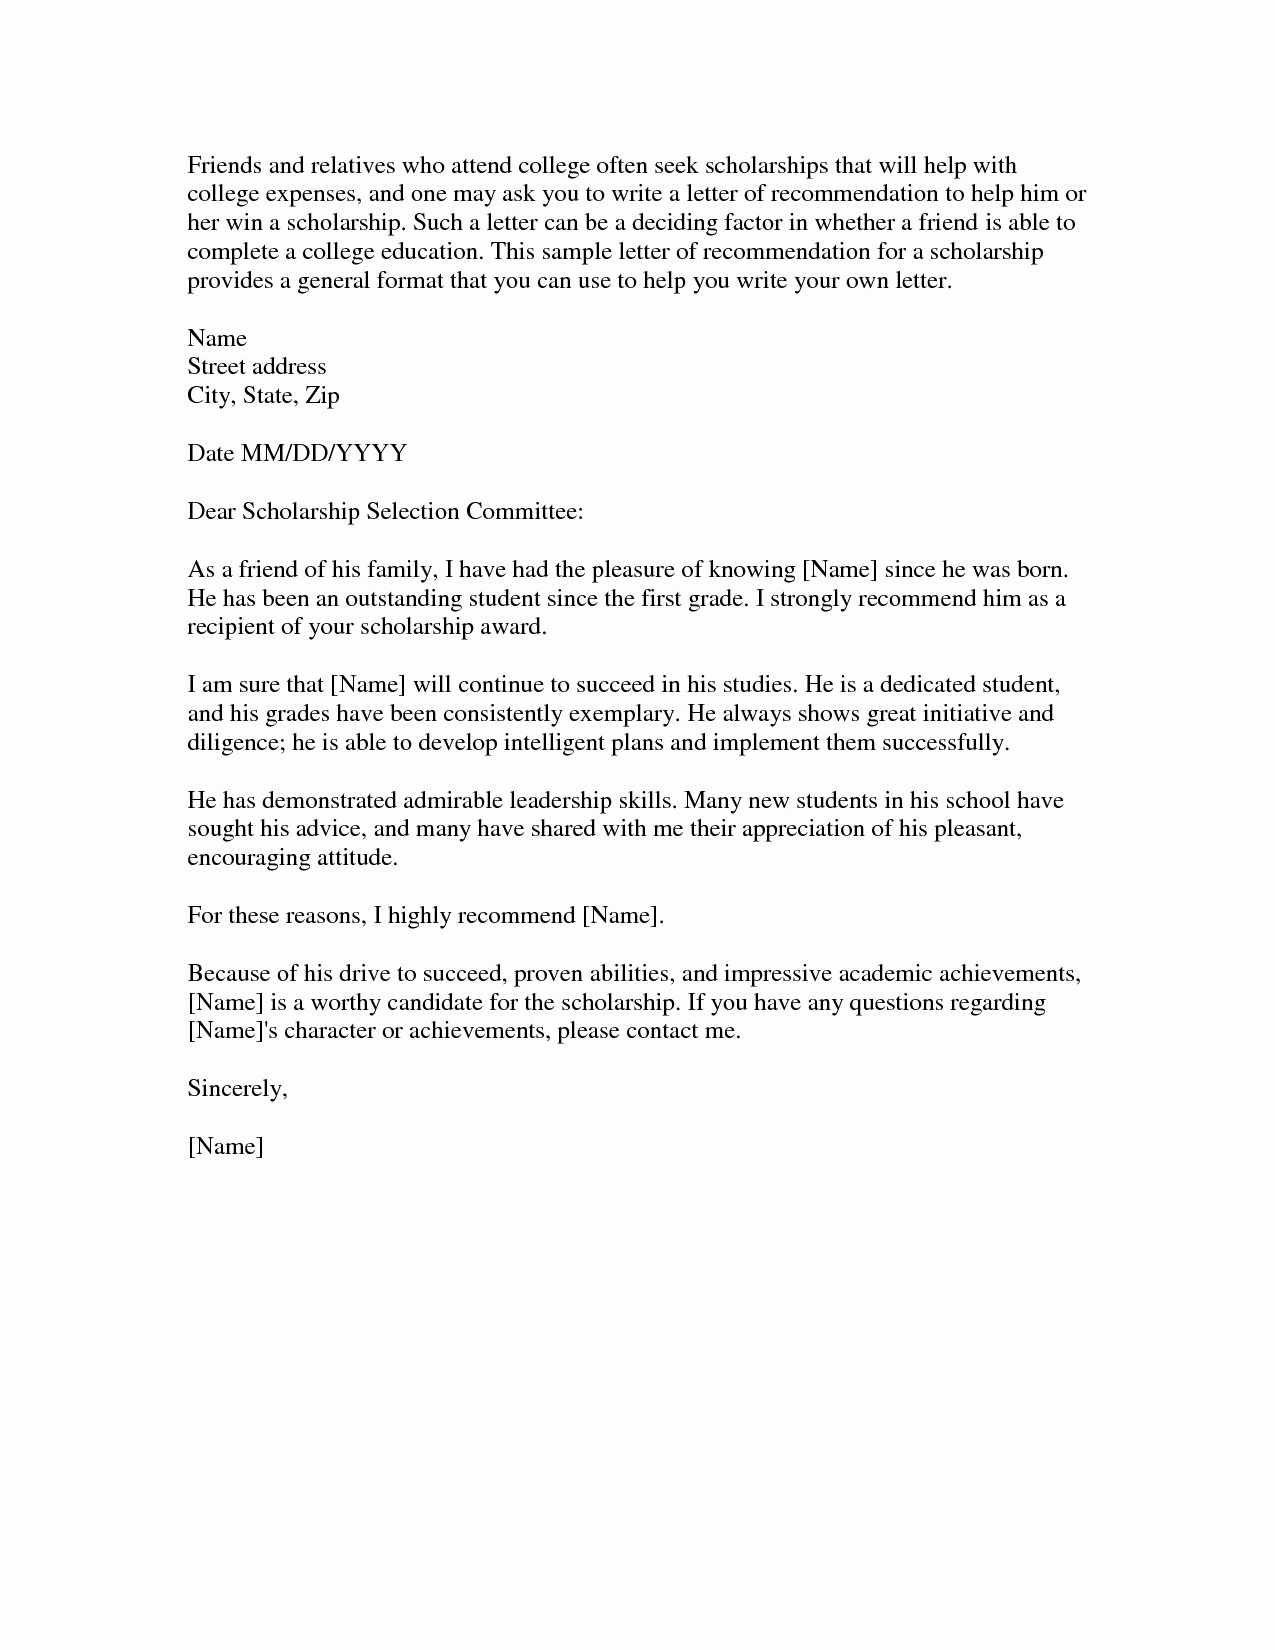 Scholarship Recommendation Letter From Friend Fresh Download Scholarship Re Mendation Letter Sample Word